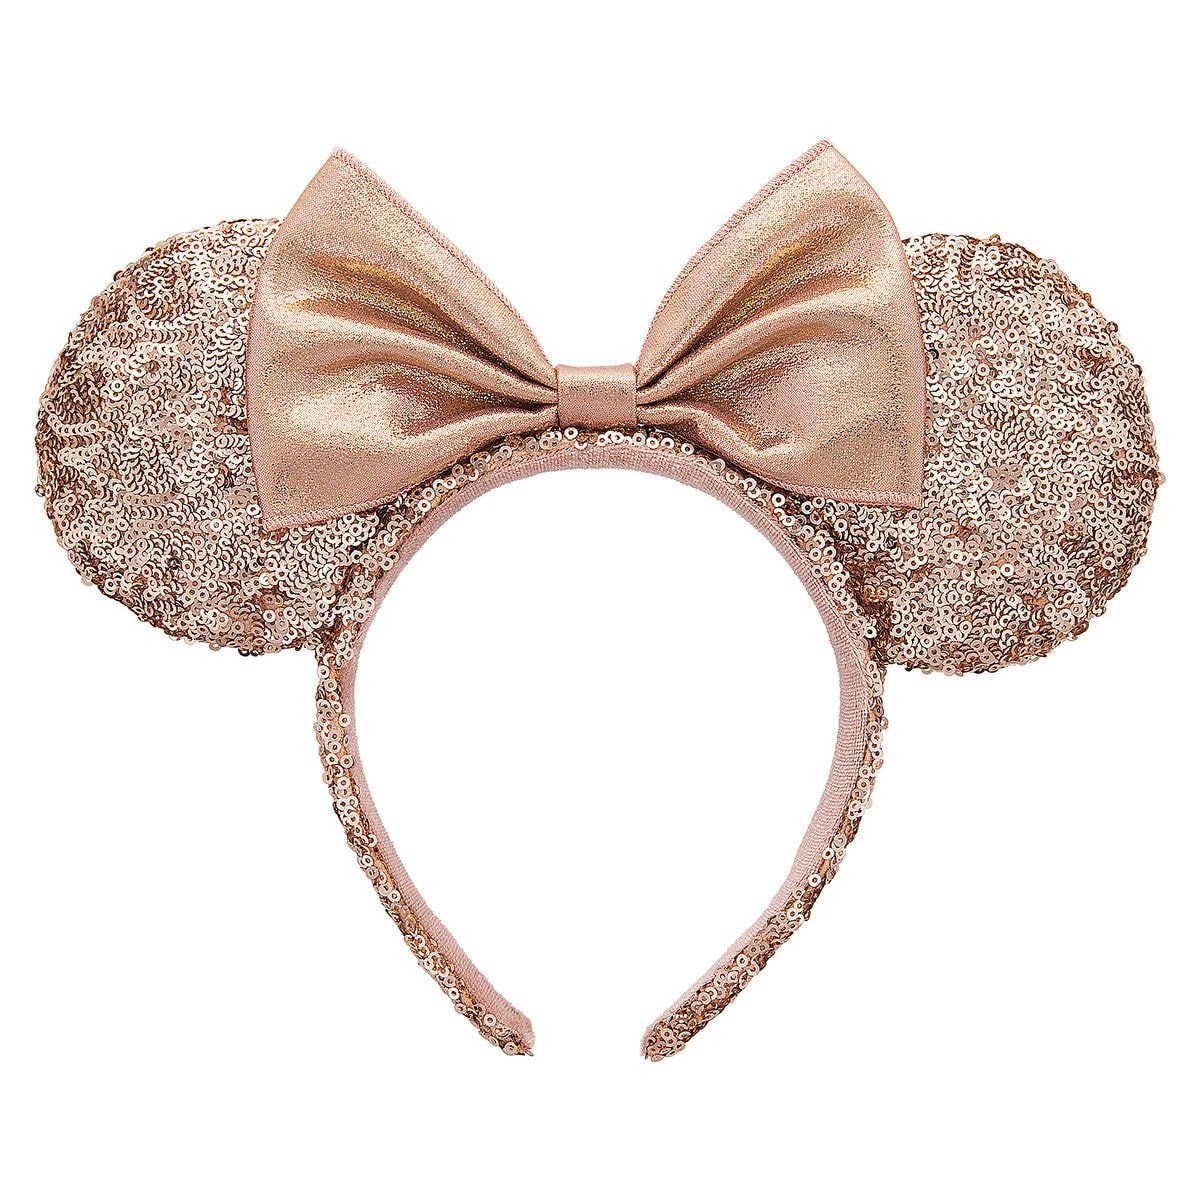 4c25372ae54 Product Image of Minnie Mouse Rose Gold Sequined Ear Headband   1